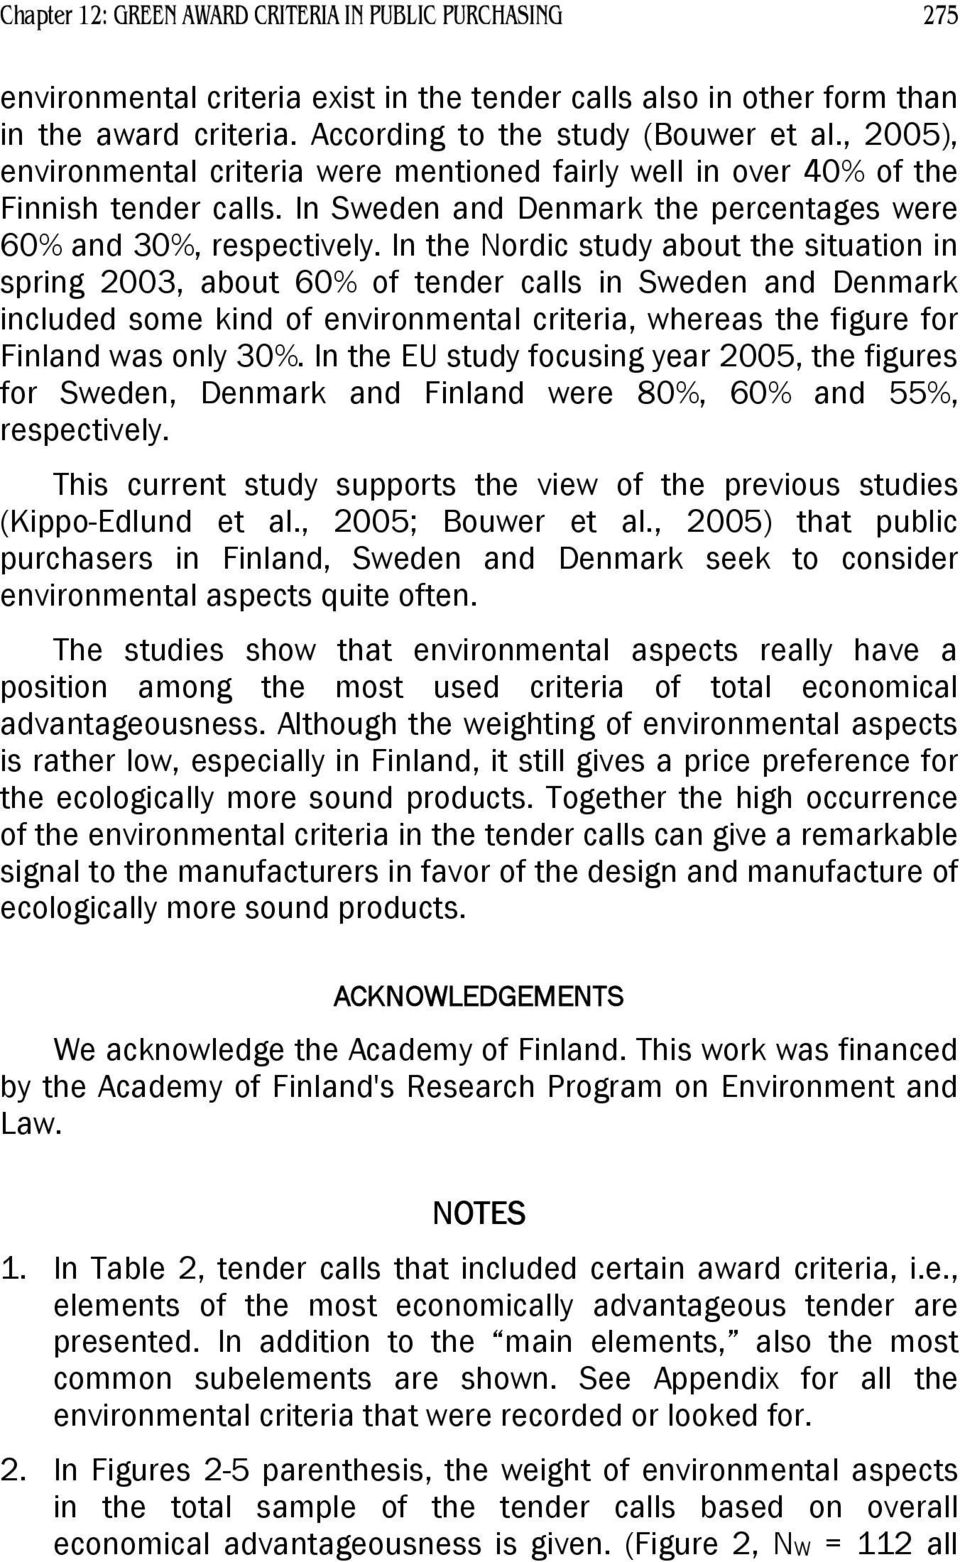 In the Nordic study about the situation in spring 2003, about 60% of tender calls in Sweden and Denmark included some kind of environmental criteria, whereas the figure for Finland was only 30%.